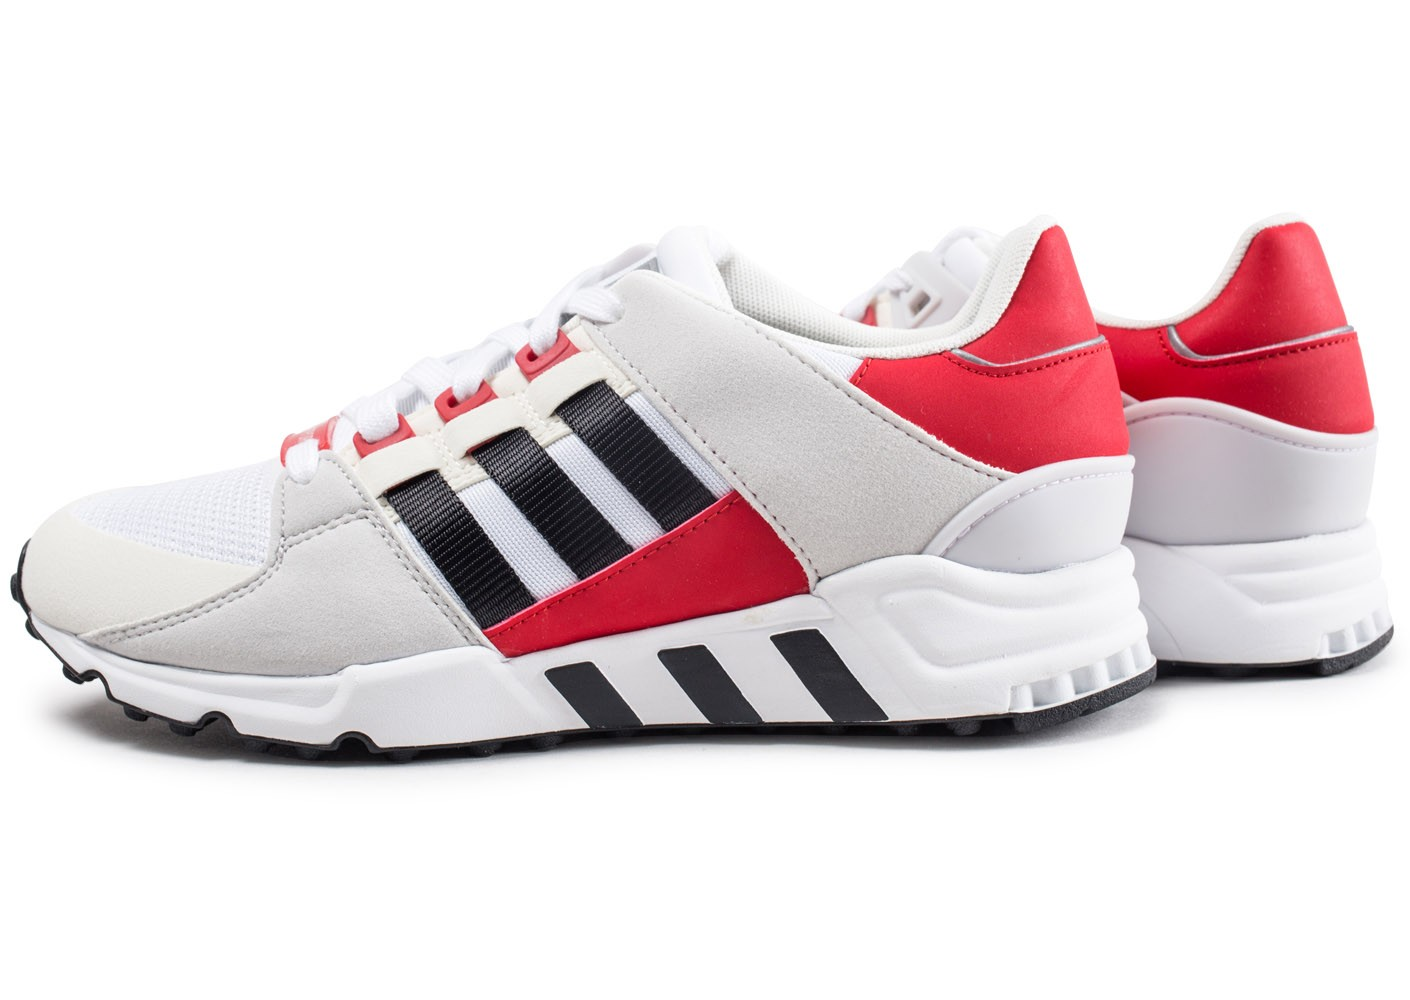 Baskets Adidas Support Chausport Eqt Rf Chaussures Homme Ncopawp8 txqH7It